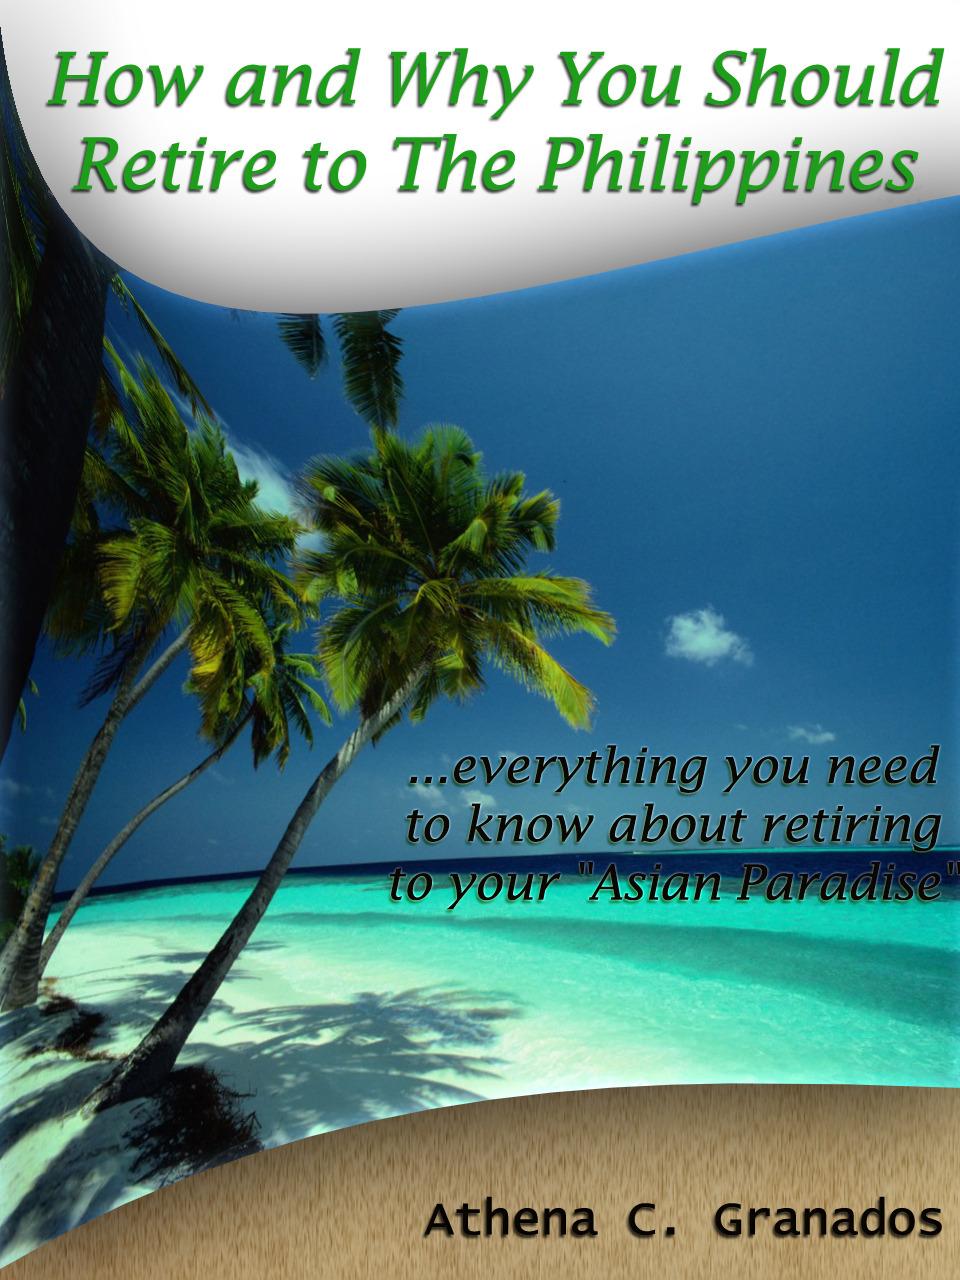 Why and How You Should Retire to The Philippines! Living the Life of a King & Queen in an Island Paradise By: Athena Granados